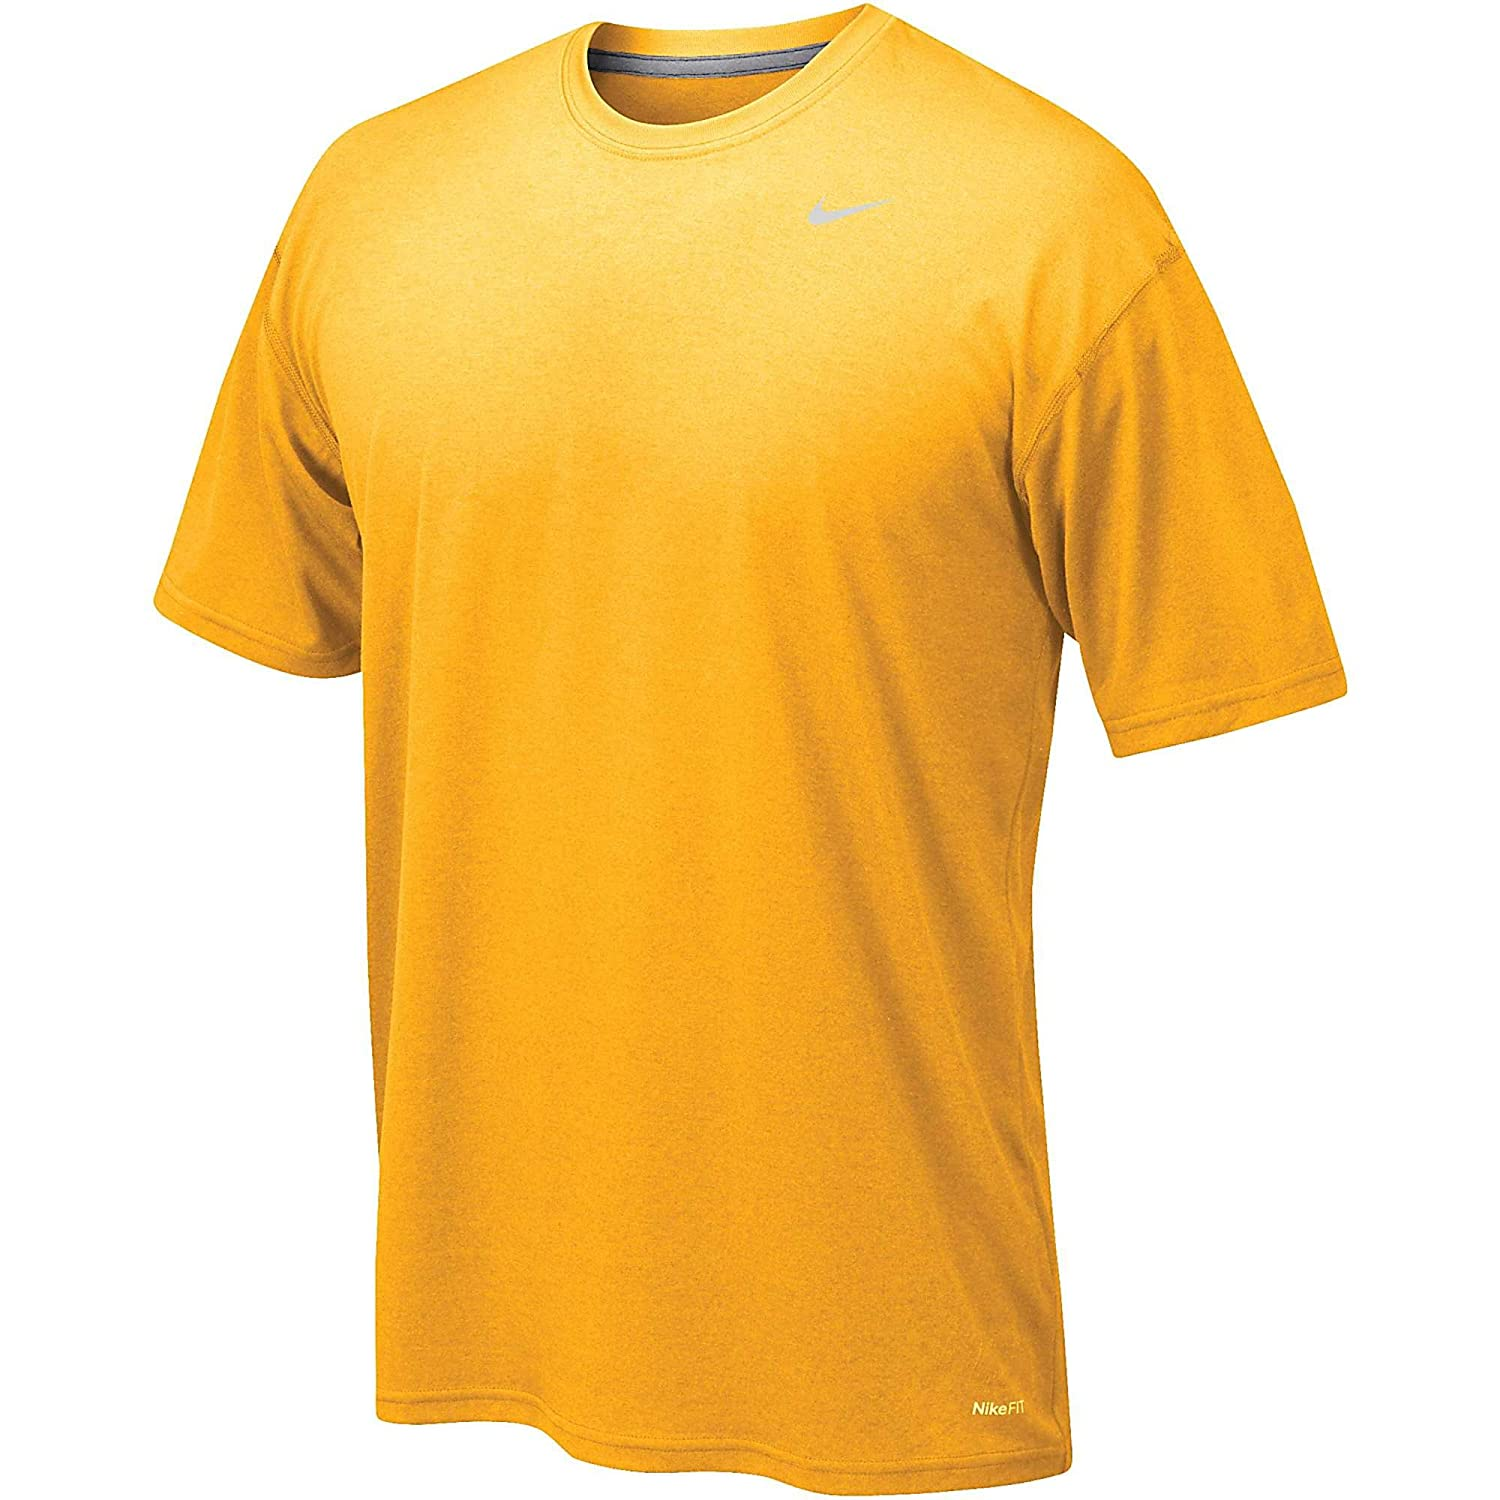 Nike 384407 Legend Dri Fit Short Sleeve Tee – Navy B009LIFMS2 Large|gold gold Large